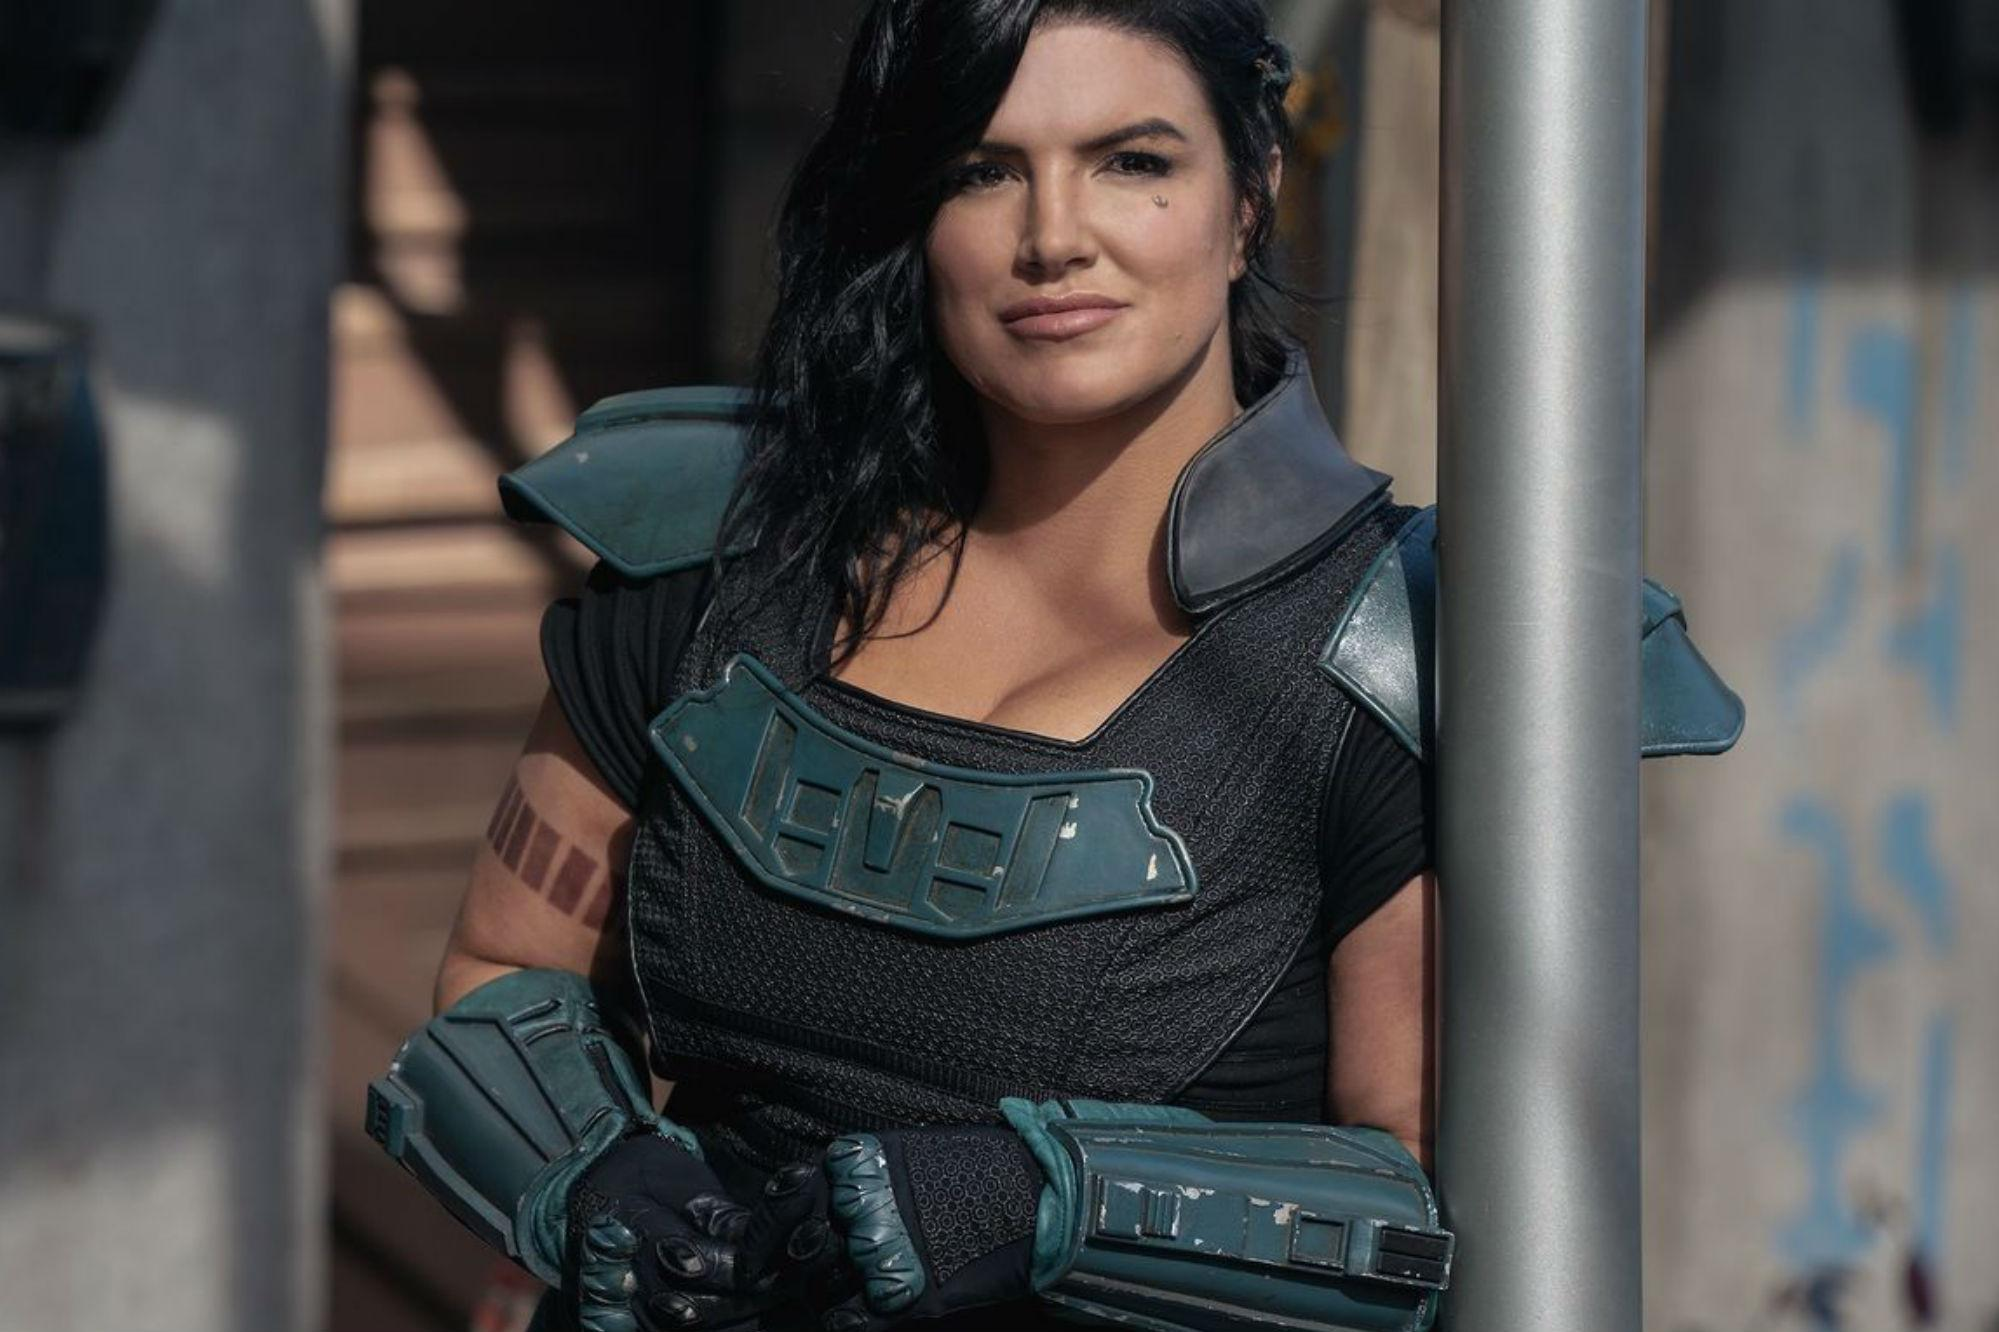 Gina Carano Gets Candid About Hollywood